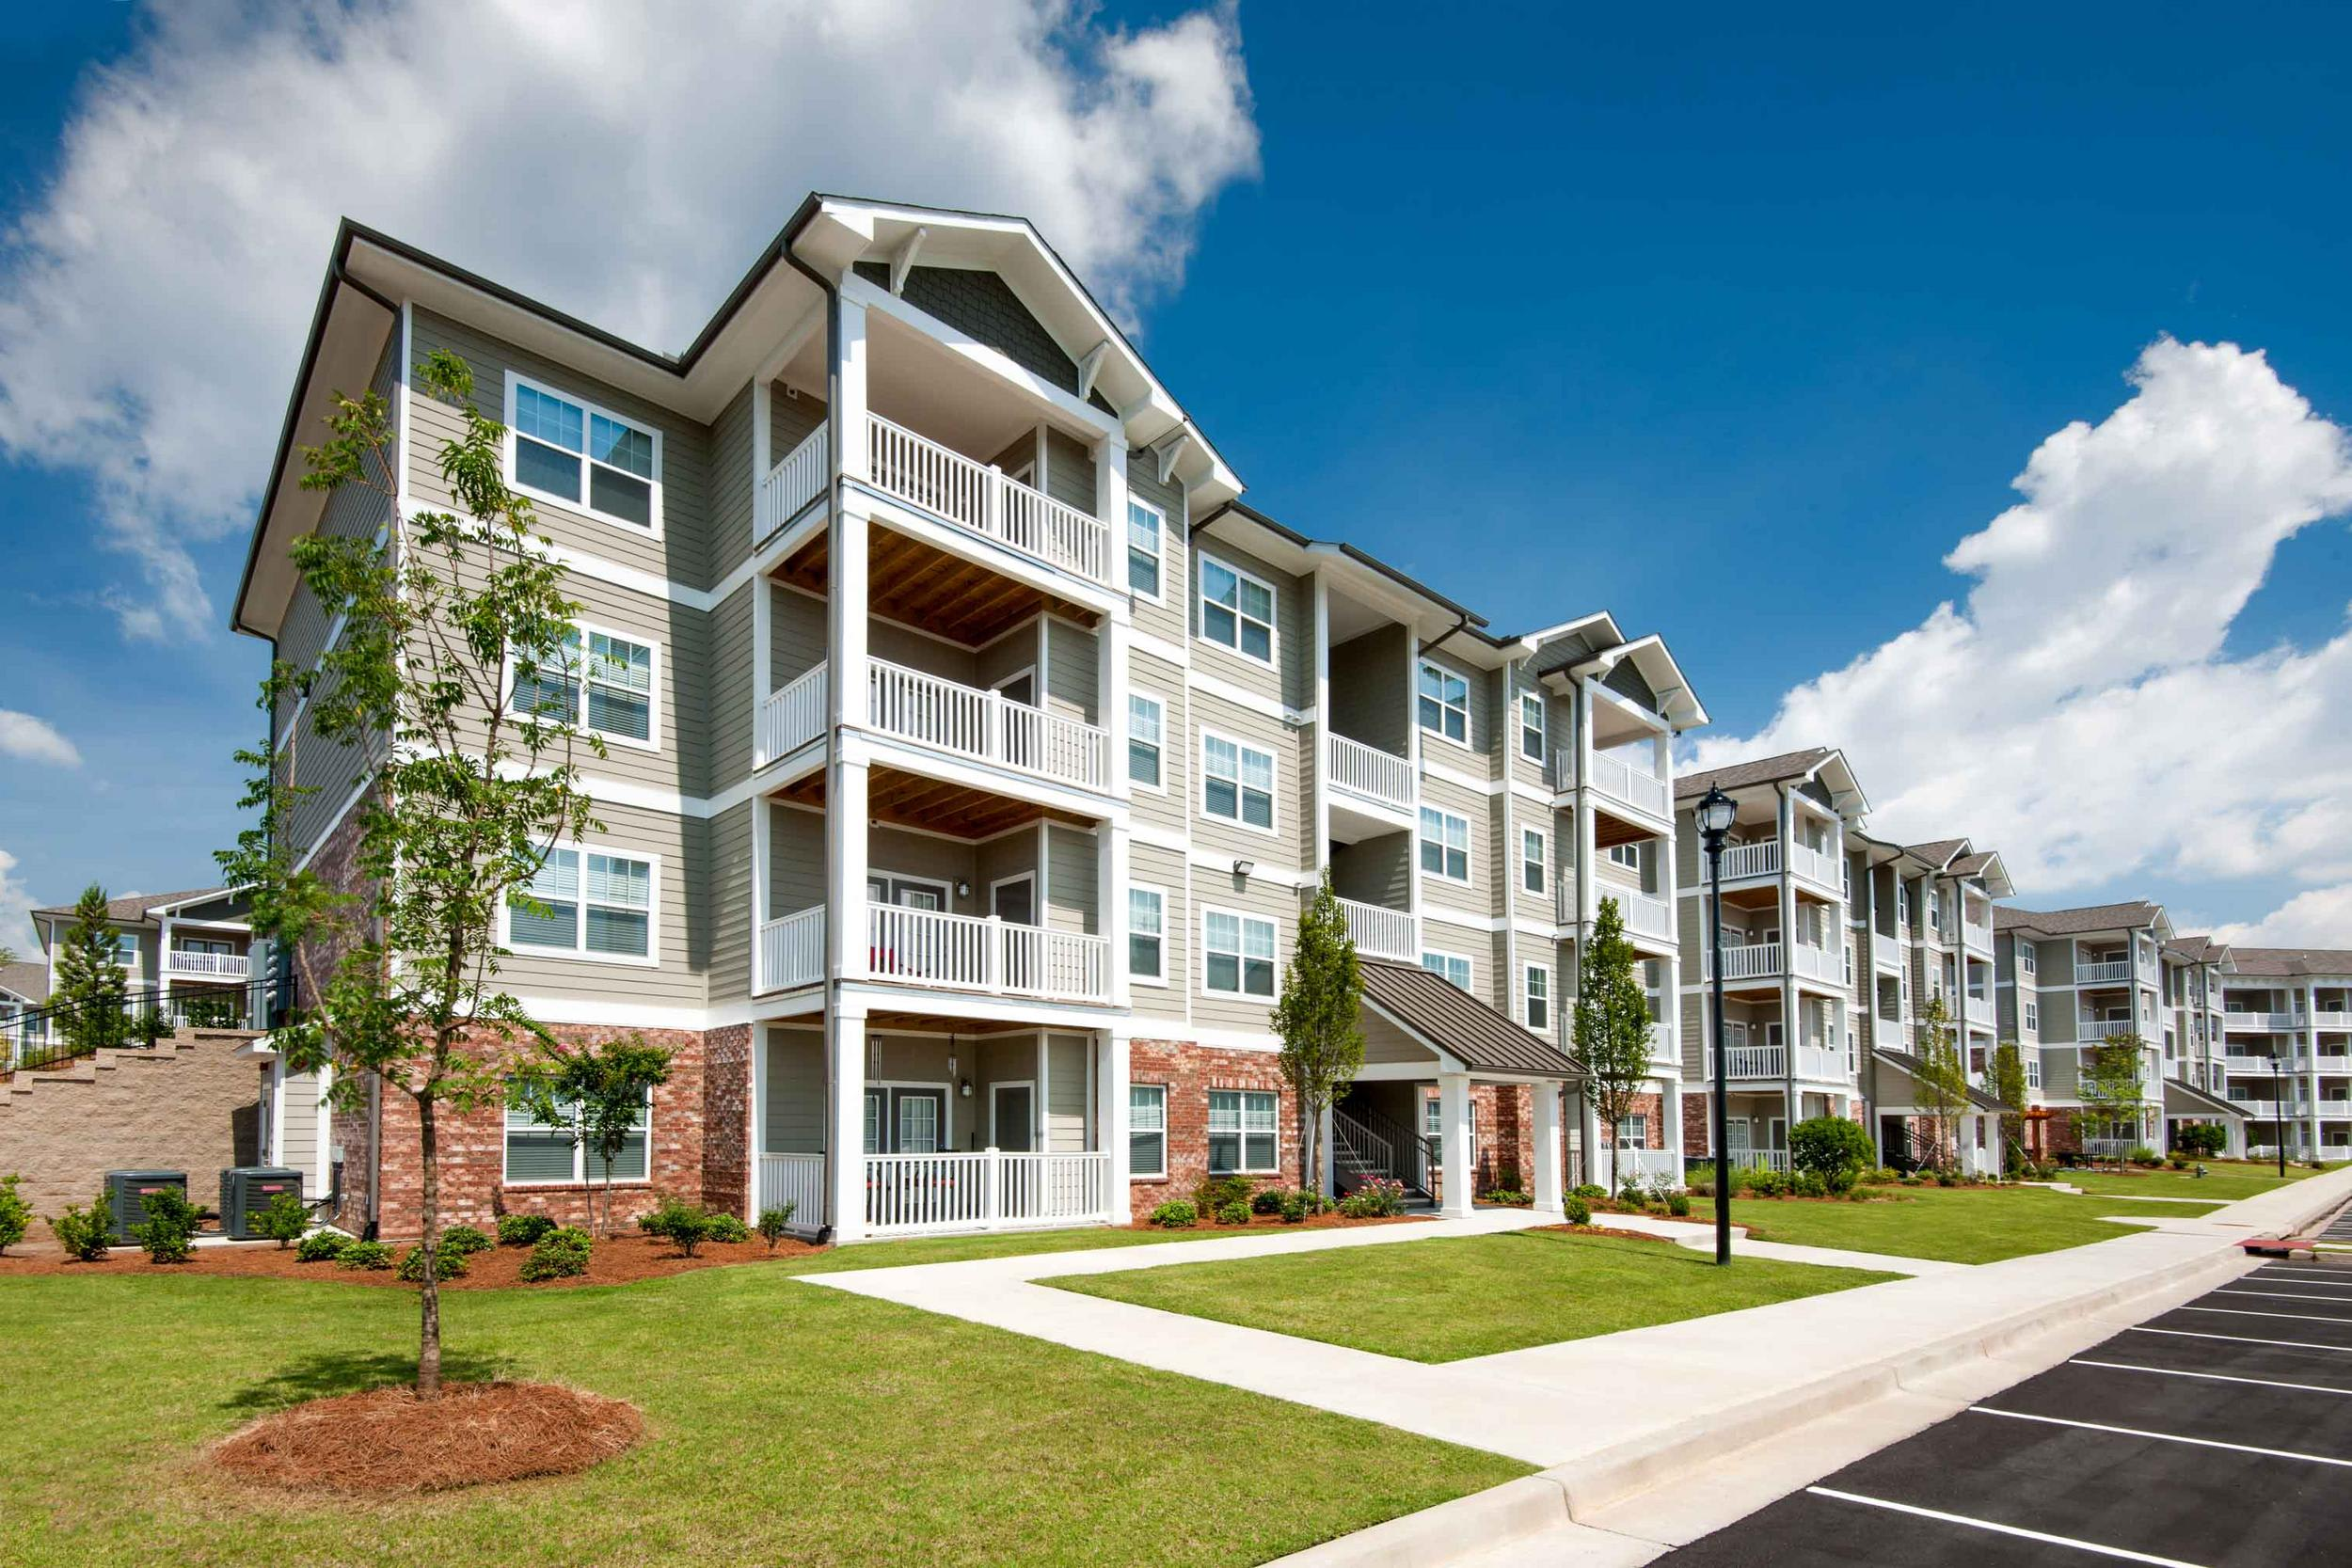 Apply For Apartments Online Atlanta Ga